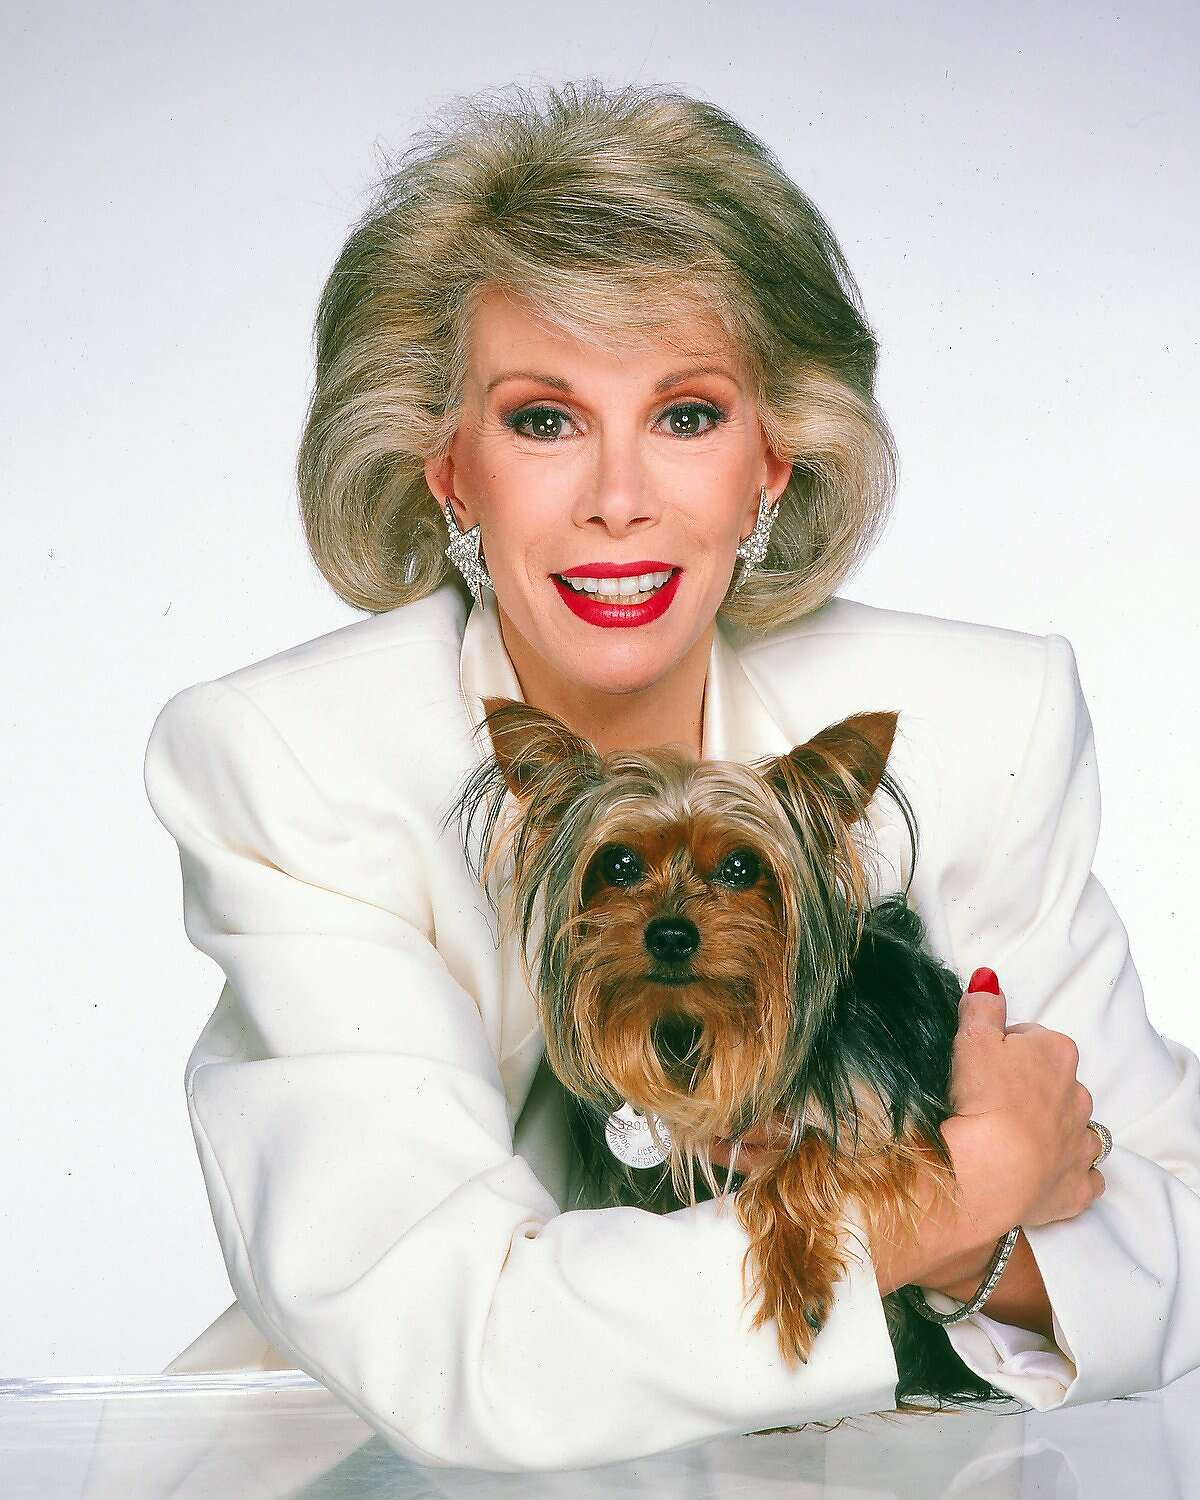 Comedian Joan Rivers poses for a portrait in 1985 in Los Angeles.